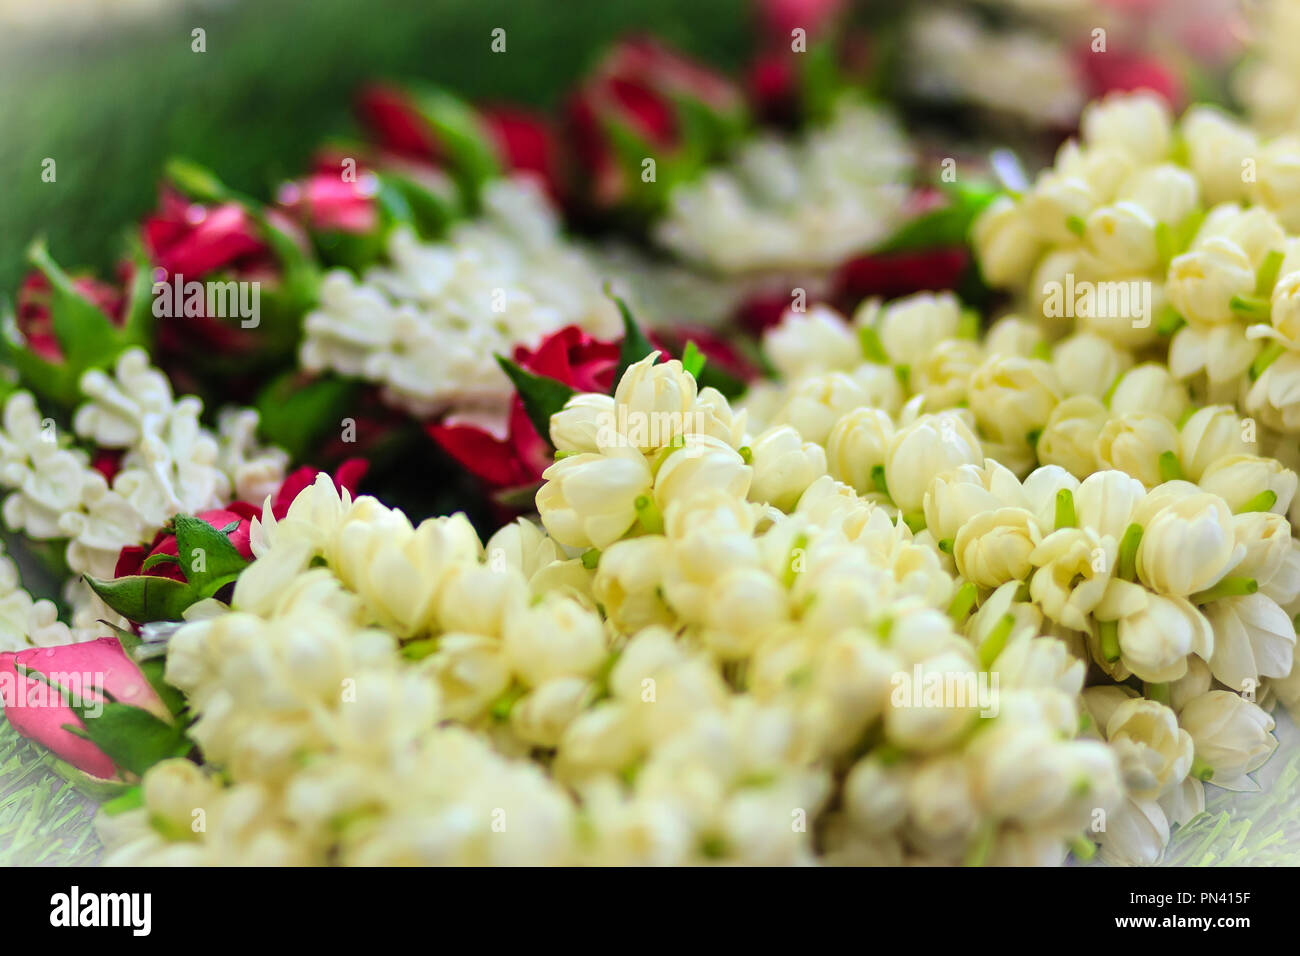 Beautiful Garlands Made Of Jasminesroses And Crown Flowers For Sale